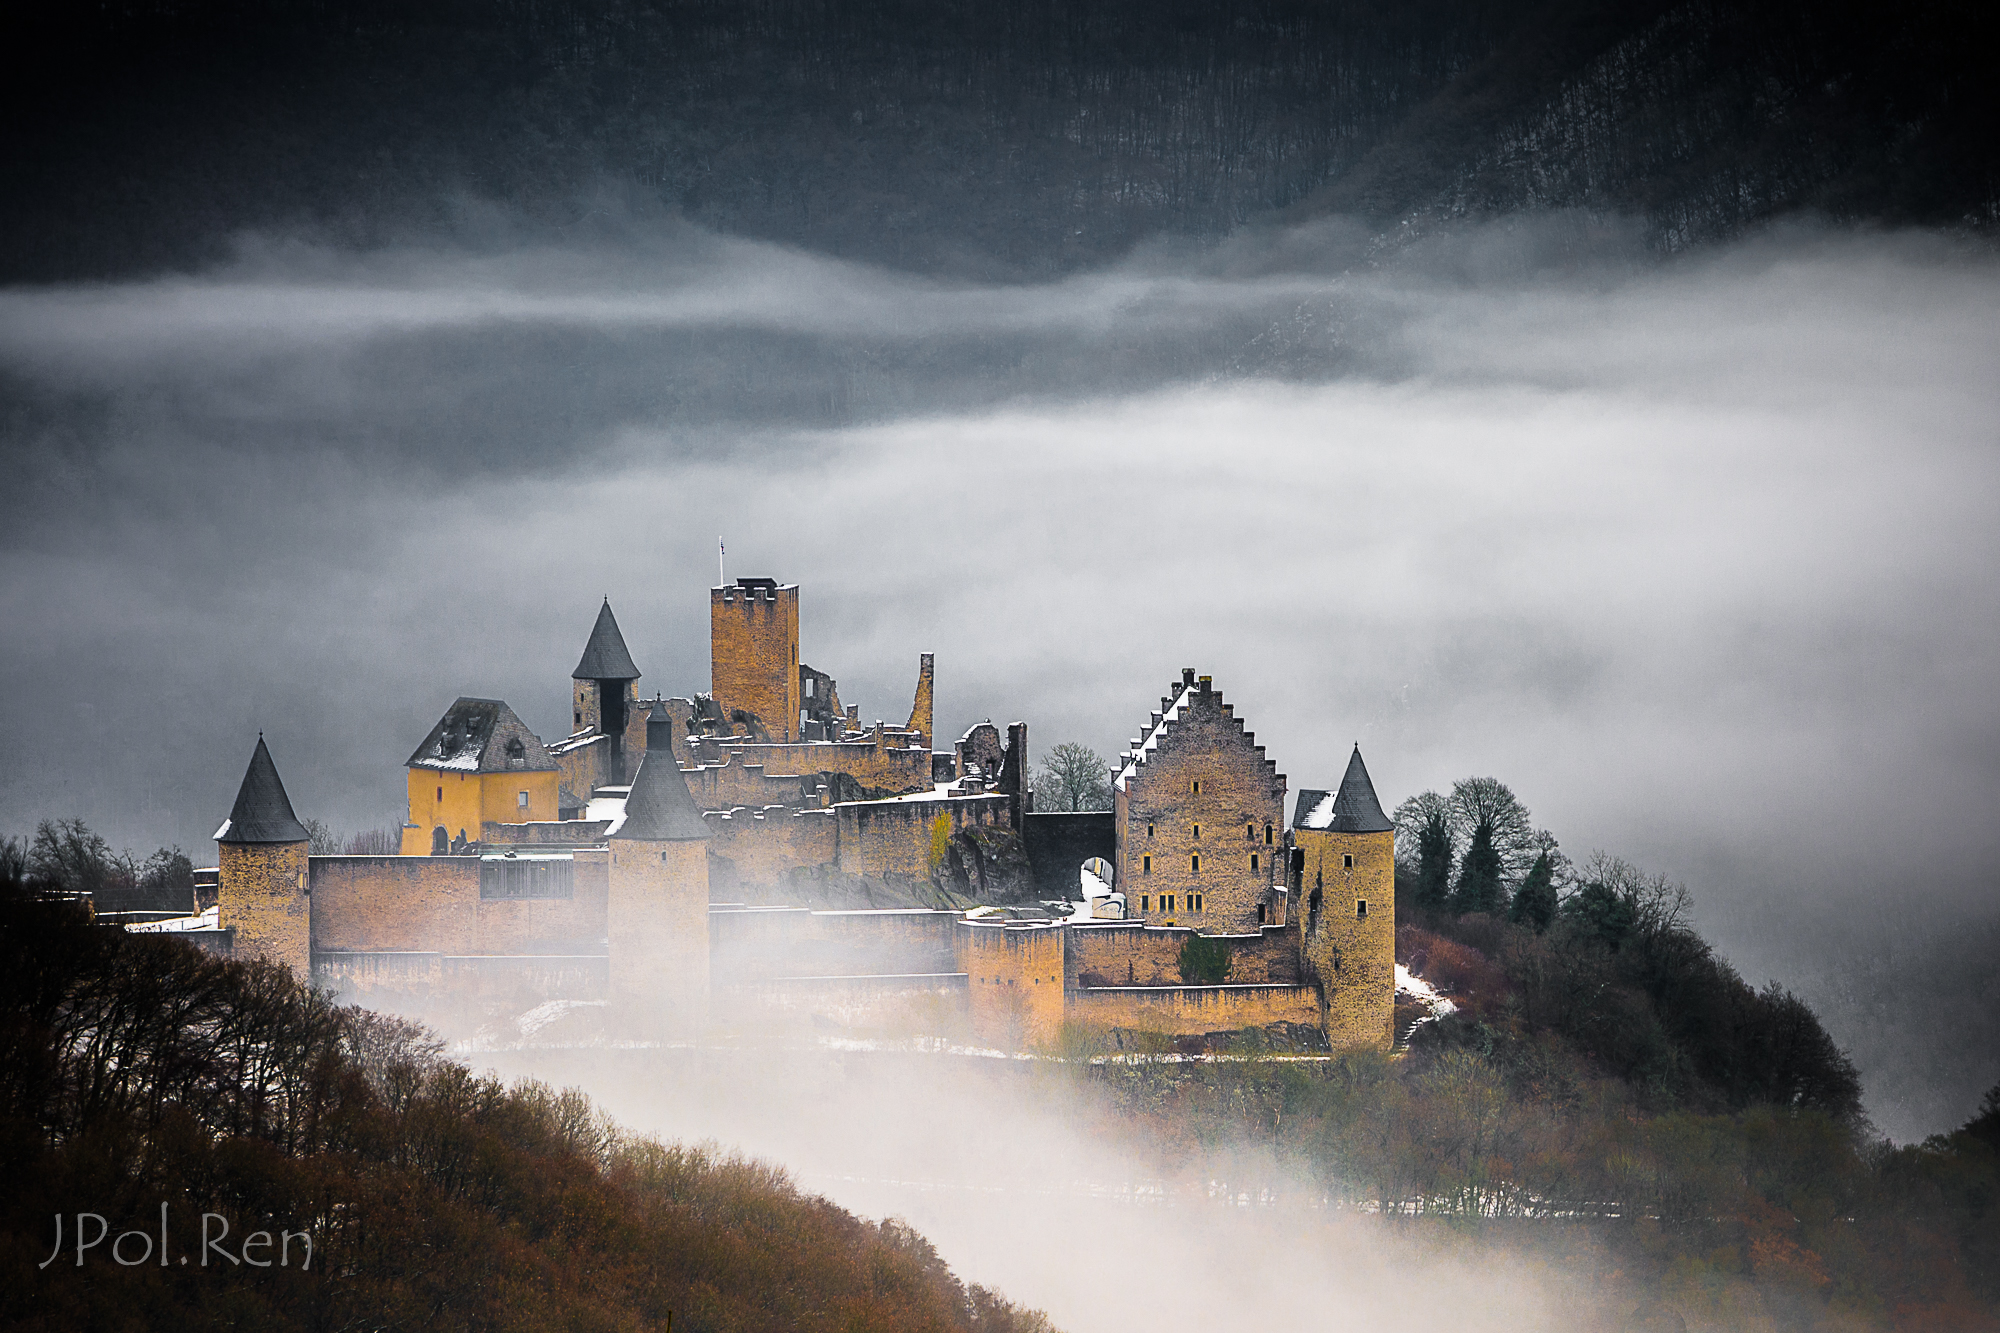 Foggy castle 893822FL31bou0143